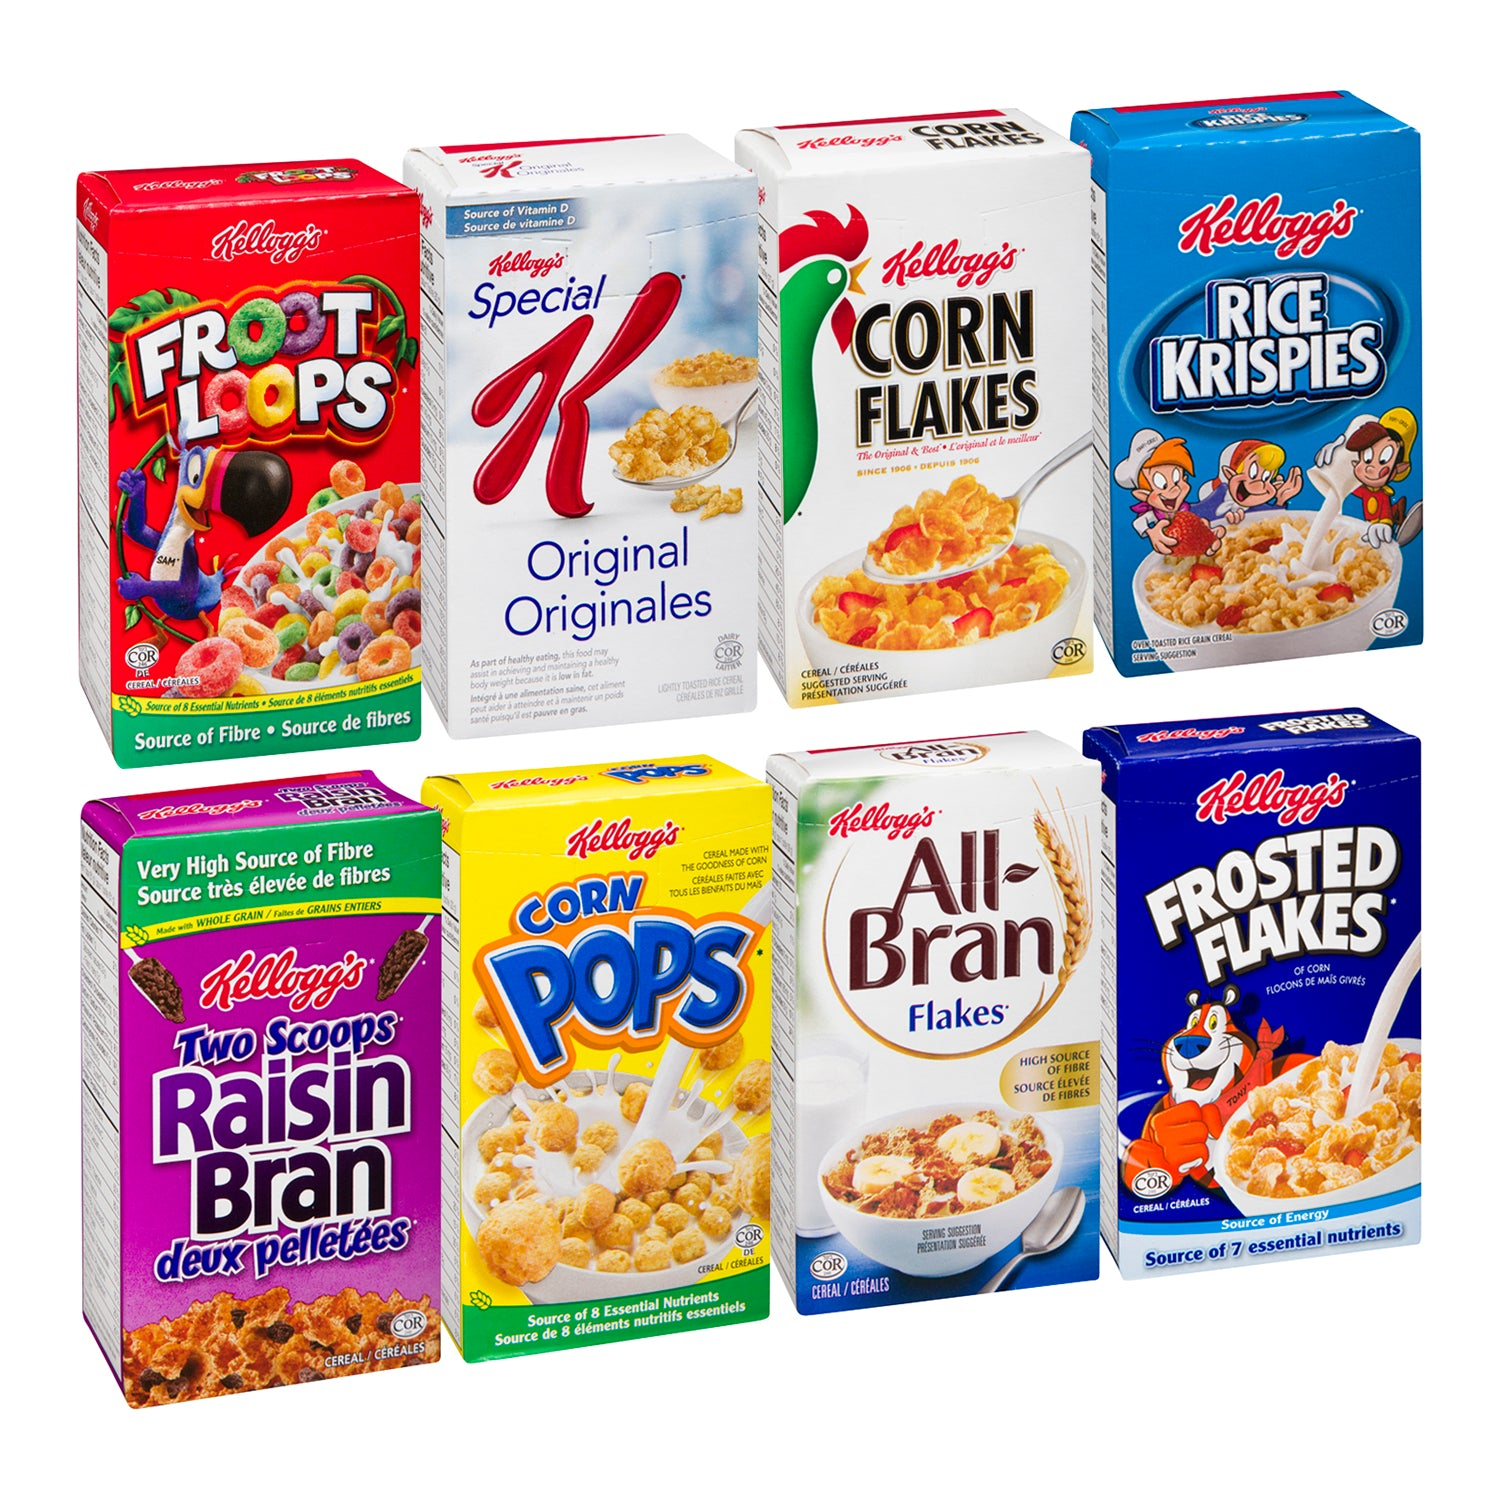 Kellogg's Assorted Individual Cereal 30 g - 70 Pack [$0.70/each]